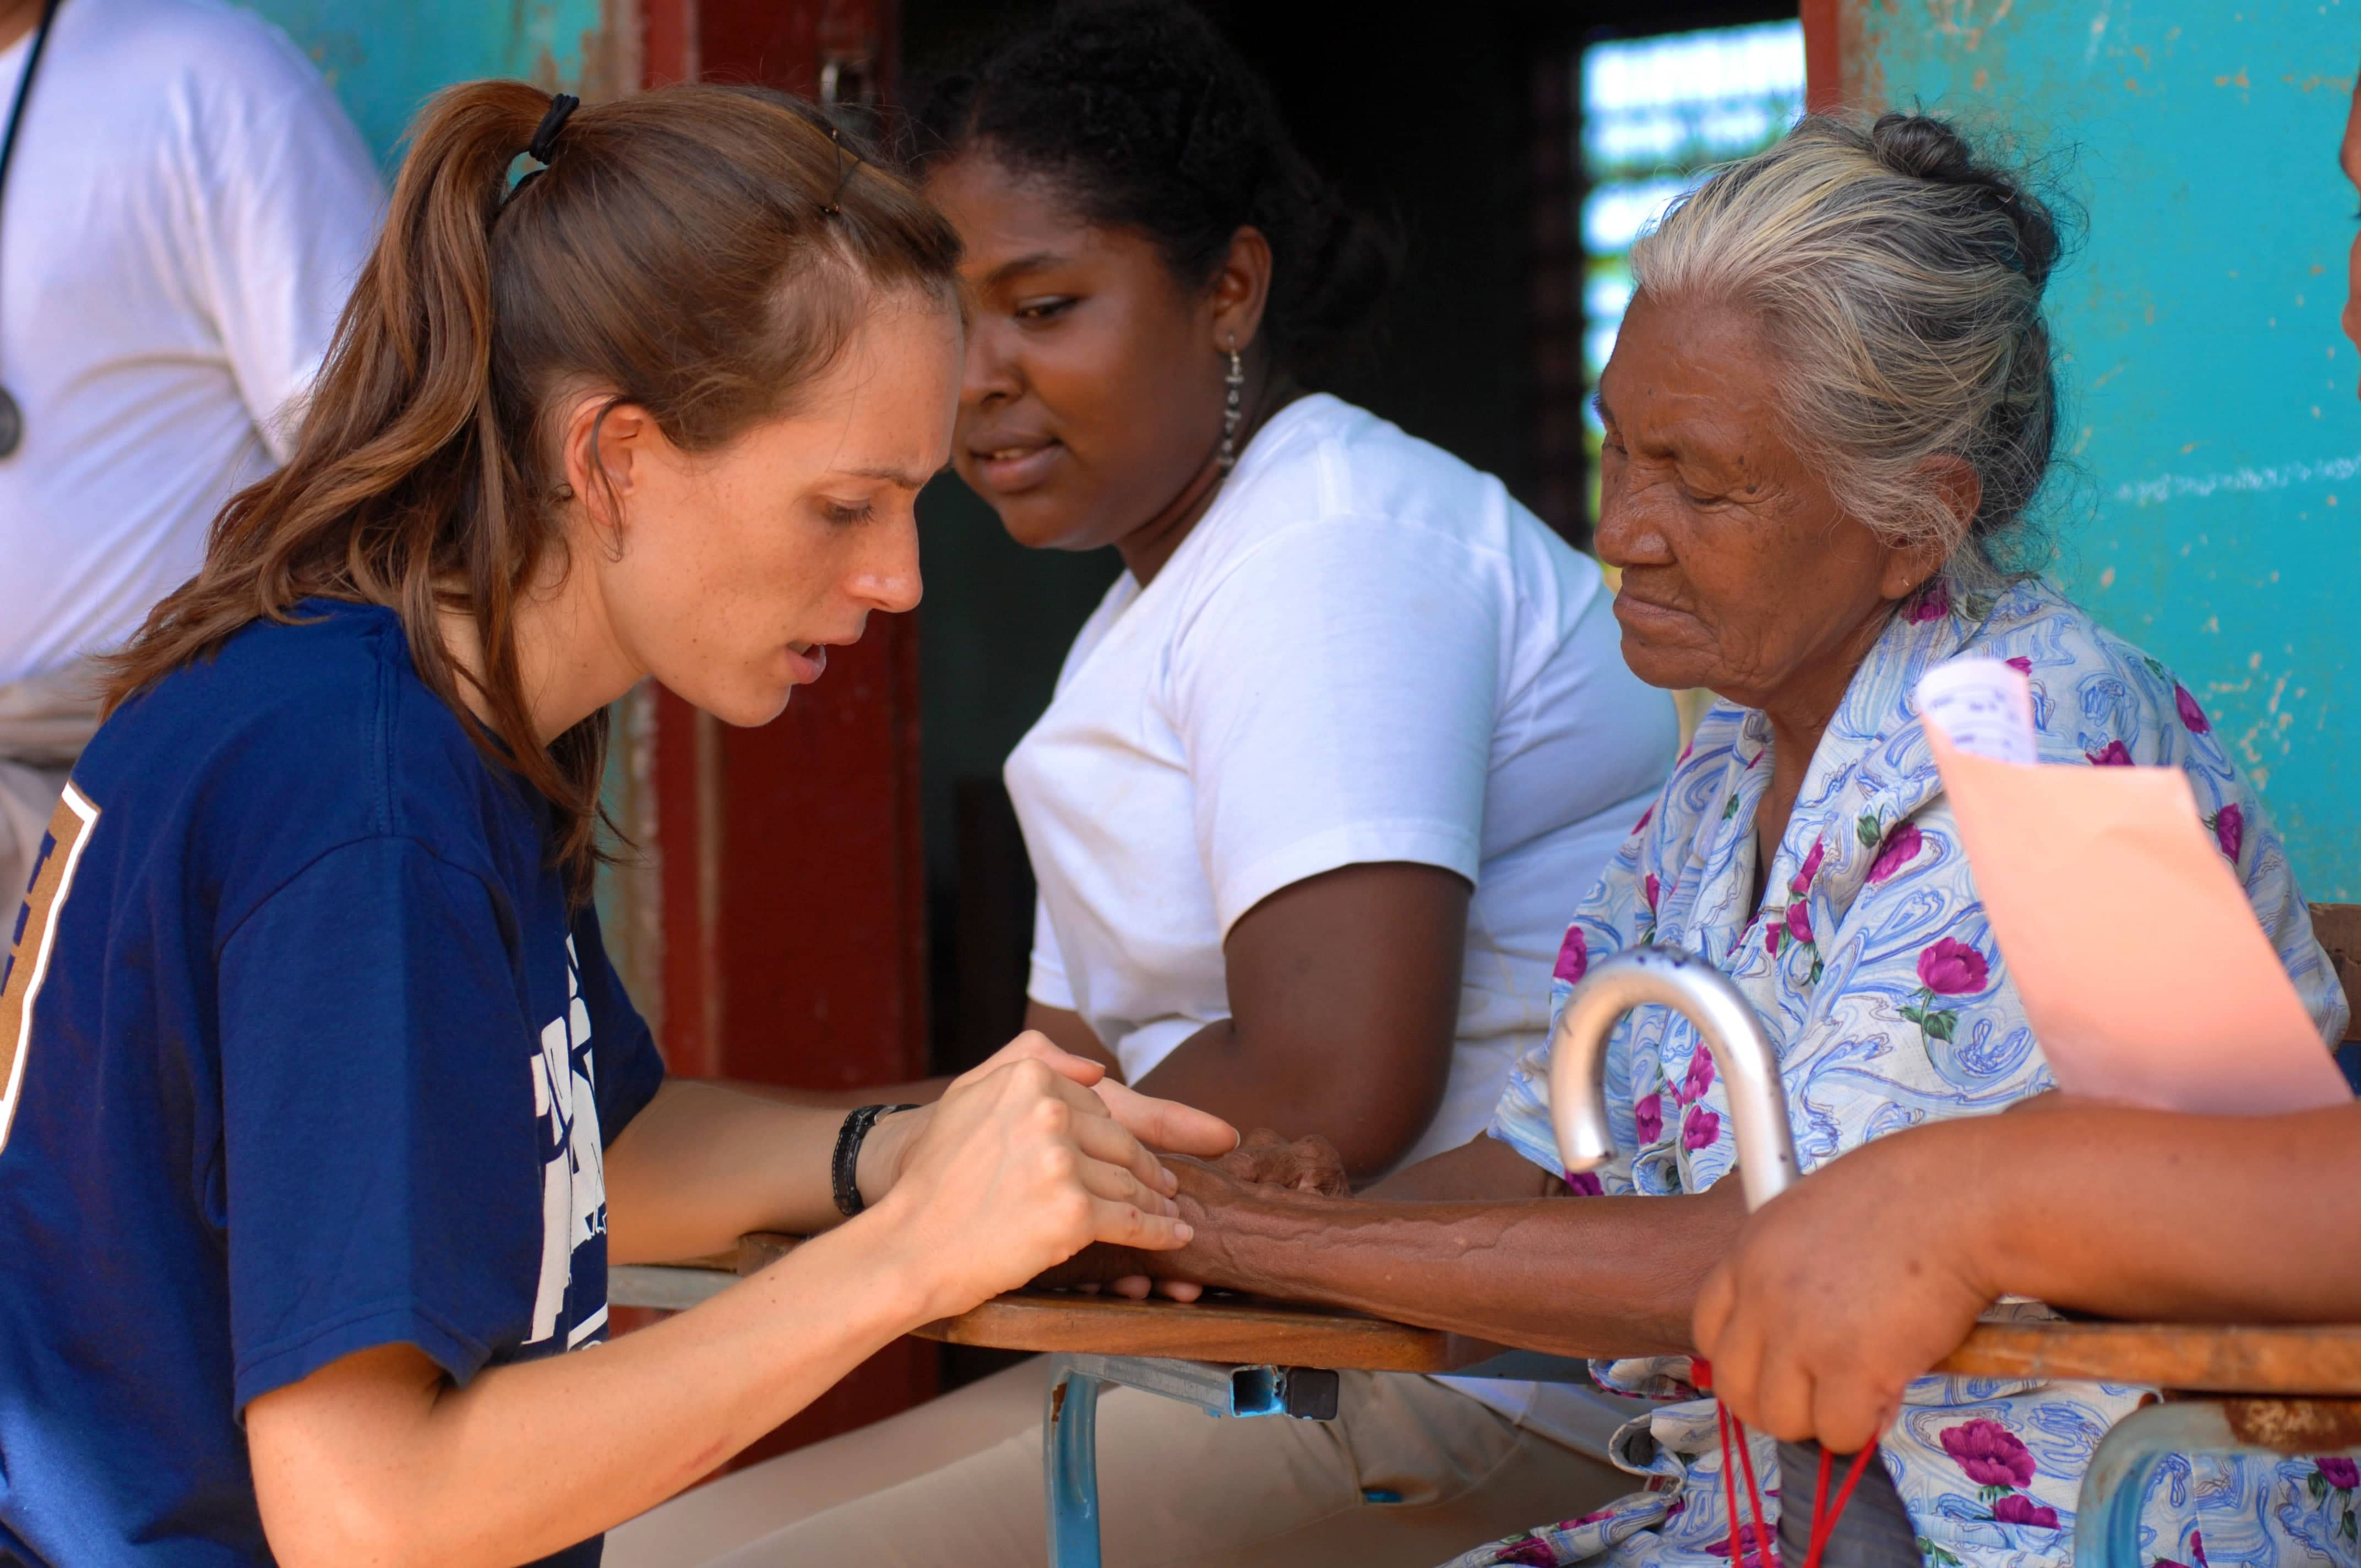 080815-N-7540C-148 PUERTO CABEZAS, Nicaragua (Aug.15, 2008) Project Hope volunteer Sara Joyce, embarked aboard the amphibious assault ship USS Kearsarge (LHD 3), examines the hand of an elderly Nicaraguan woman at a medical clinic at Juan Comenius High School during a Continuing Promise 2008 humanitarian assistance project. Kearsarge is the primary platform for the Caribbean phase of Continuing Promise, an equal-partnership mission involving the United States, Canada, the Netherlands, Brazil, Nicaragua, Panama, Colombia, Dominican Republic, Trinidad and Tobago and Guyana. (U.S. Navy photo by Mass Communication Specialist 1st Class David G. Crawford/Released)